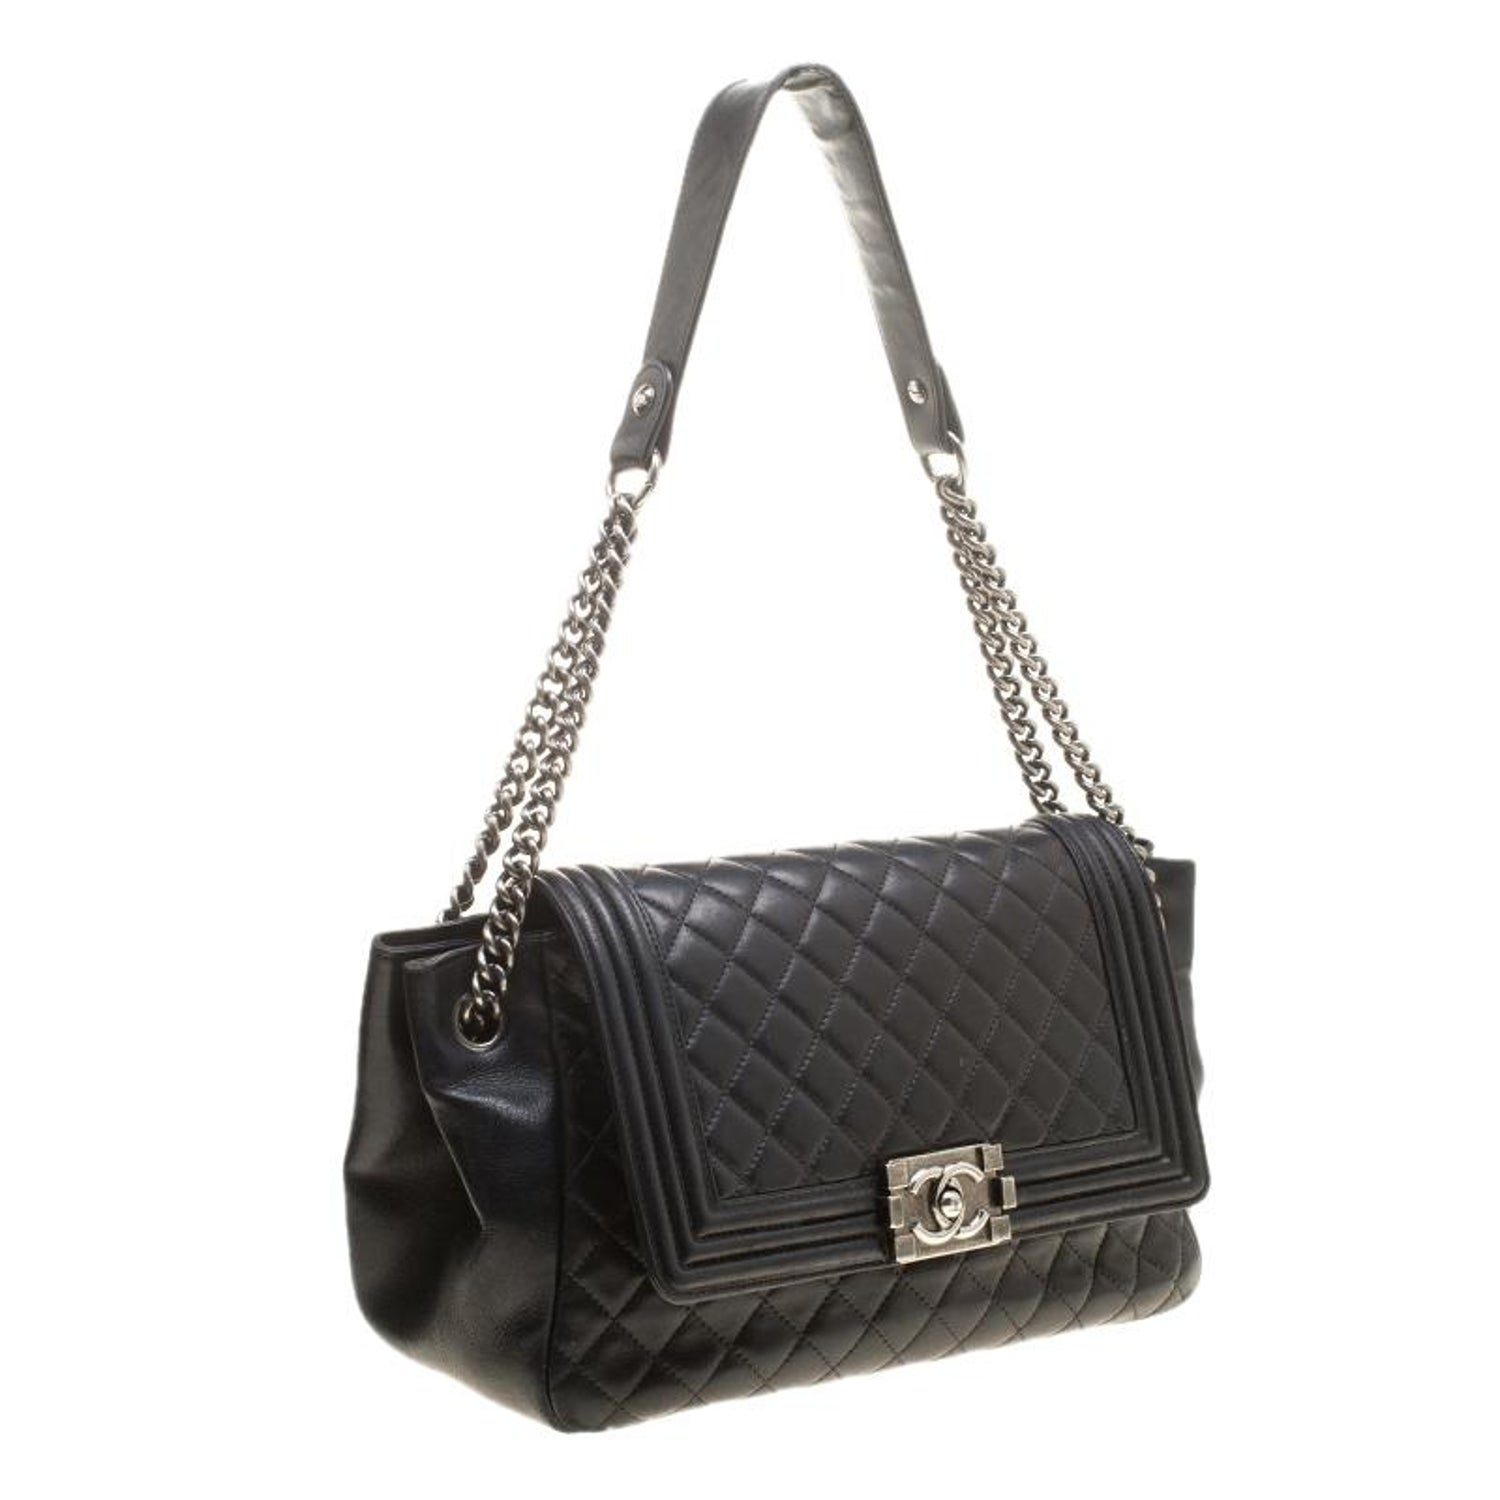 9d905adc25dc Chanel Black Quilted Leather Boy Accordion Flap Bag 100% AUTHENTIC at  1stdibs